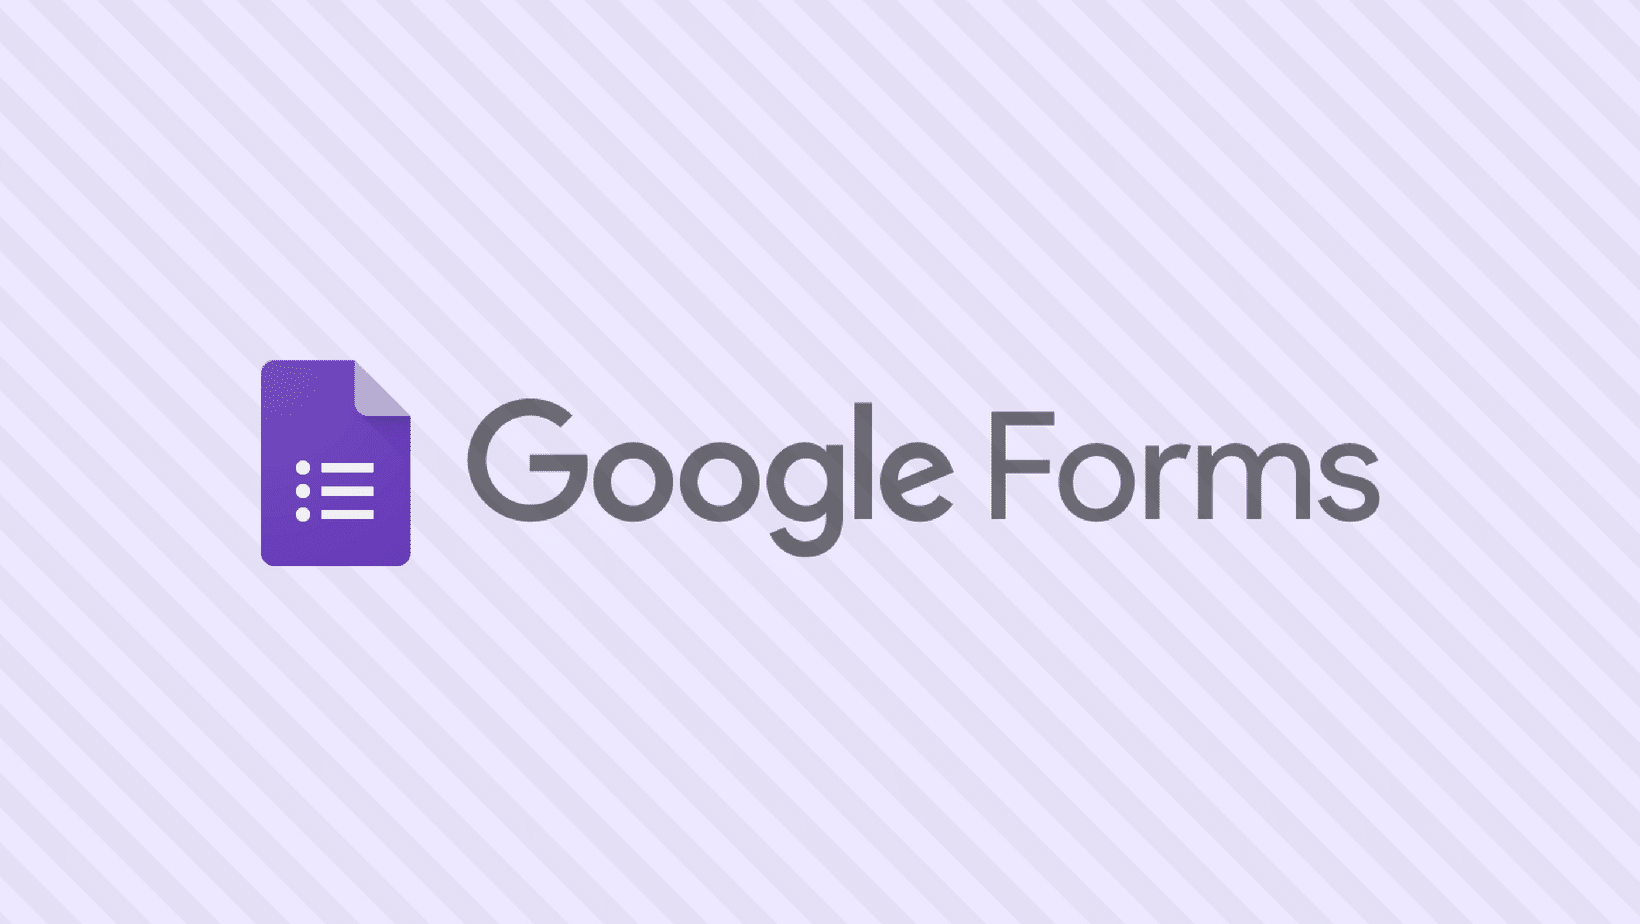 How To Embed Google Forms In WordPress: Manually Or With A Plugin.